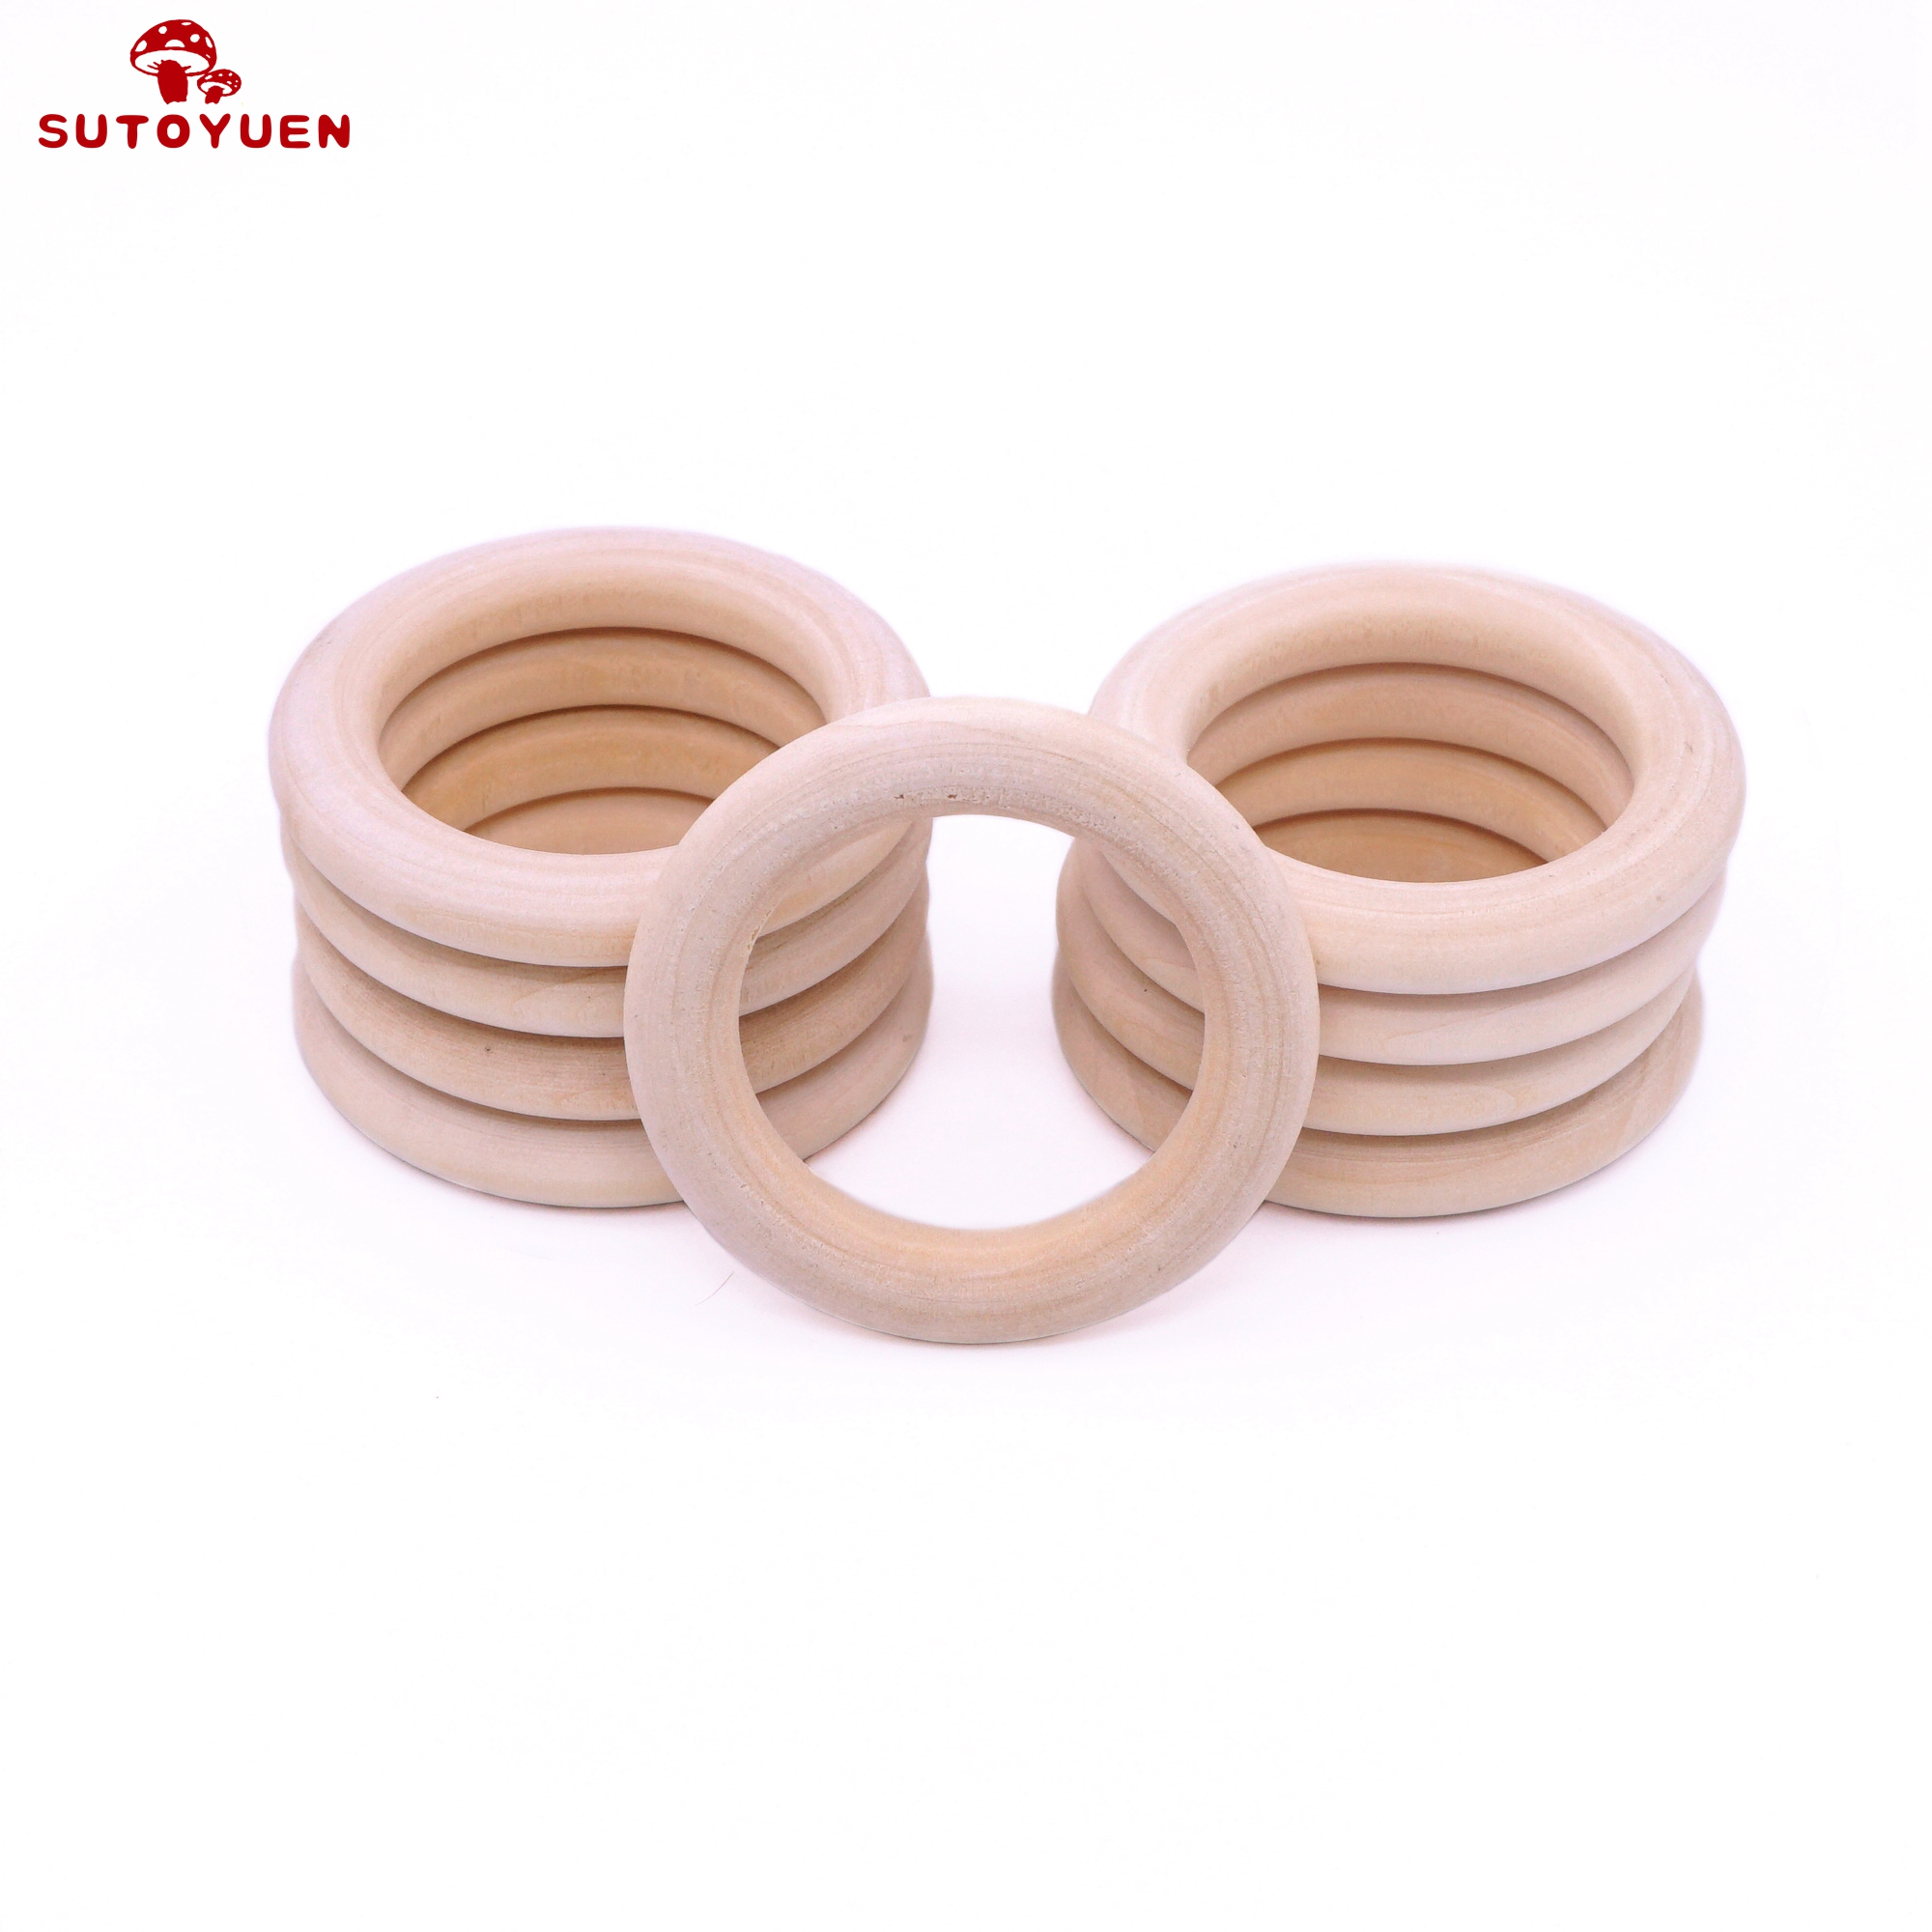 Image 4 - Sutoyuen Baby Teether 100pcs Wooden Round Wood Ring 40 70mm DIY Bracelet Crafts Gift Wood Teether Natural Teething AccessoryBaby Teethers   -